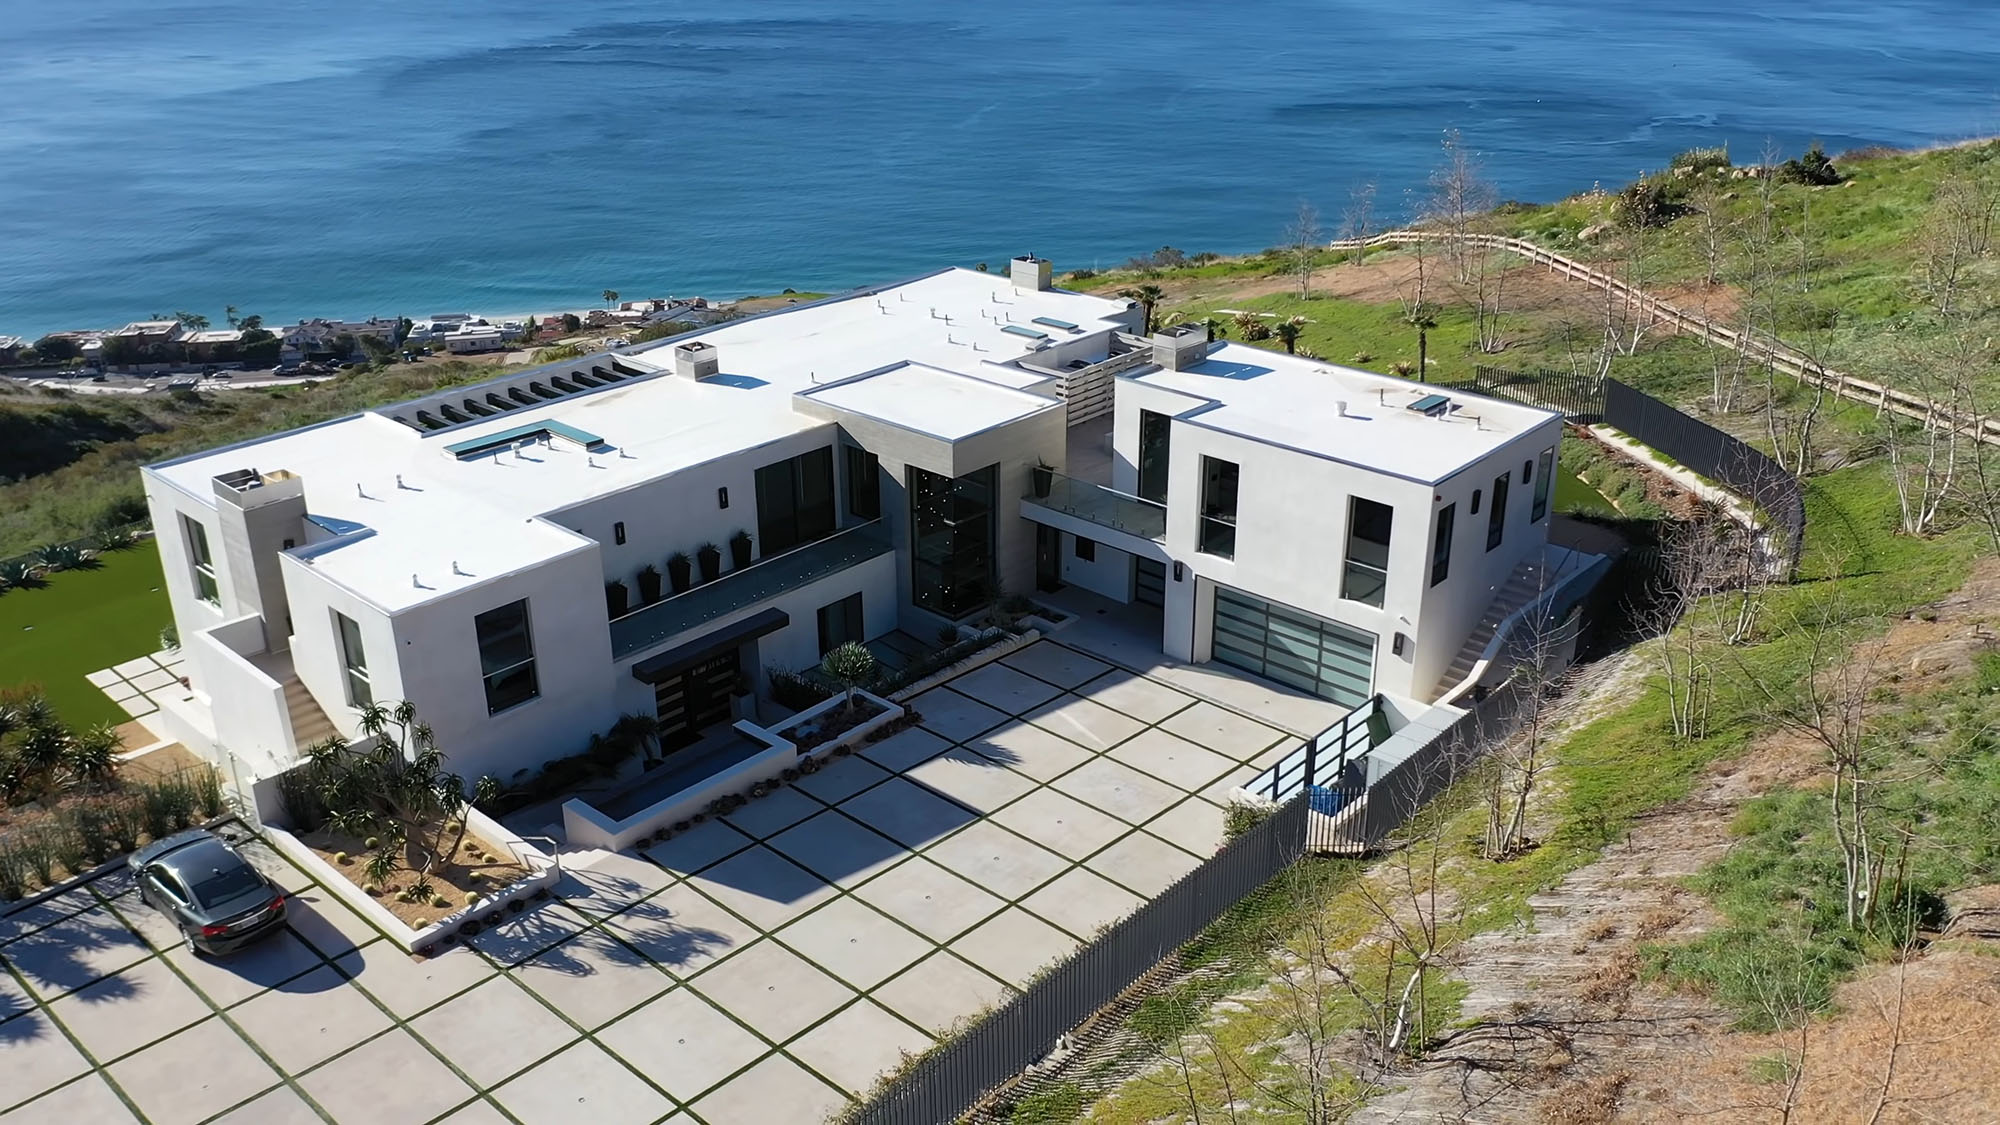 Modern oceanfront custom hoe with flat roof and parapet walls. Huge driveway made with concrete grass squares.